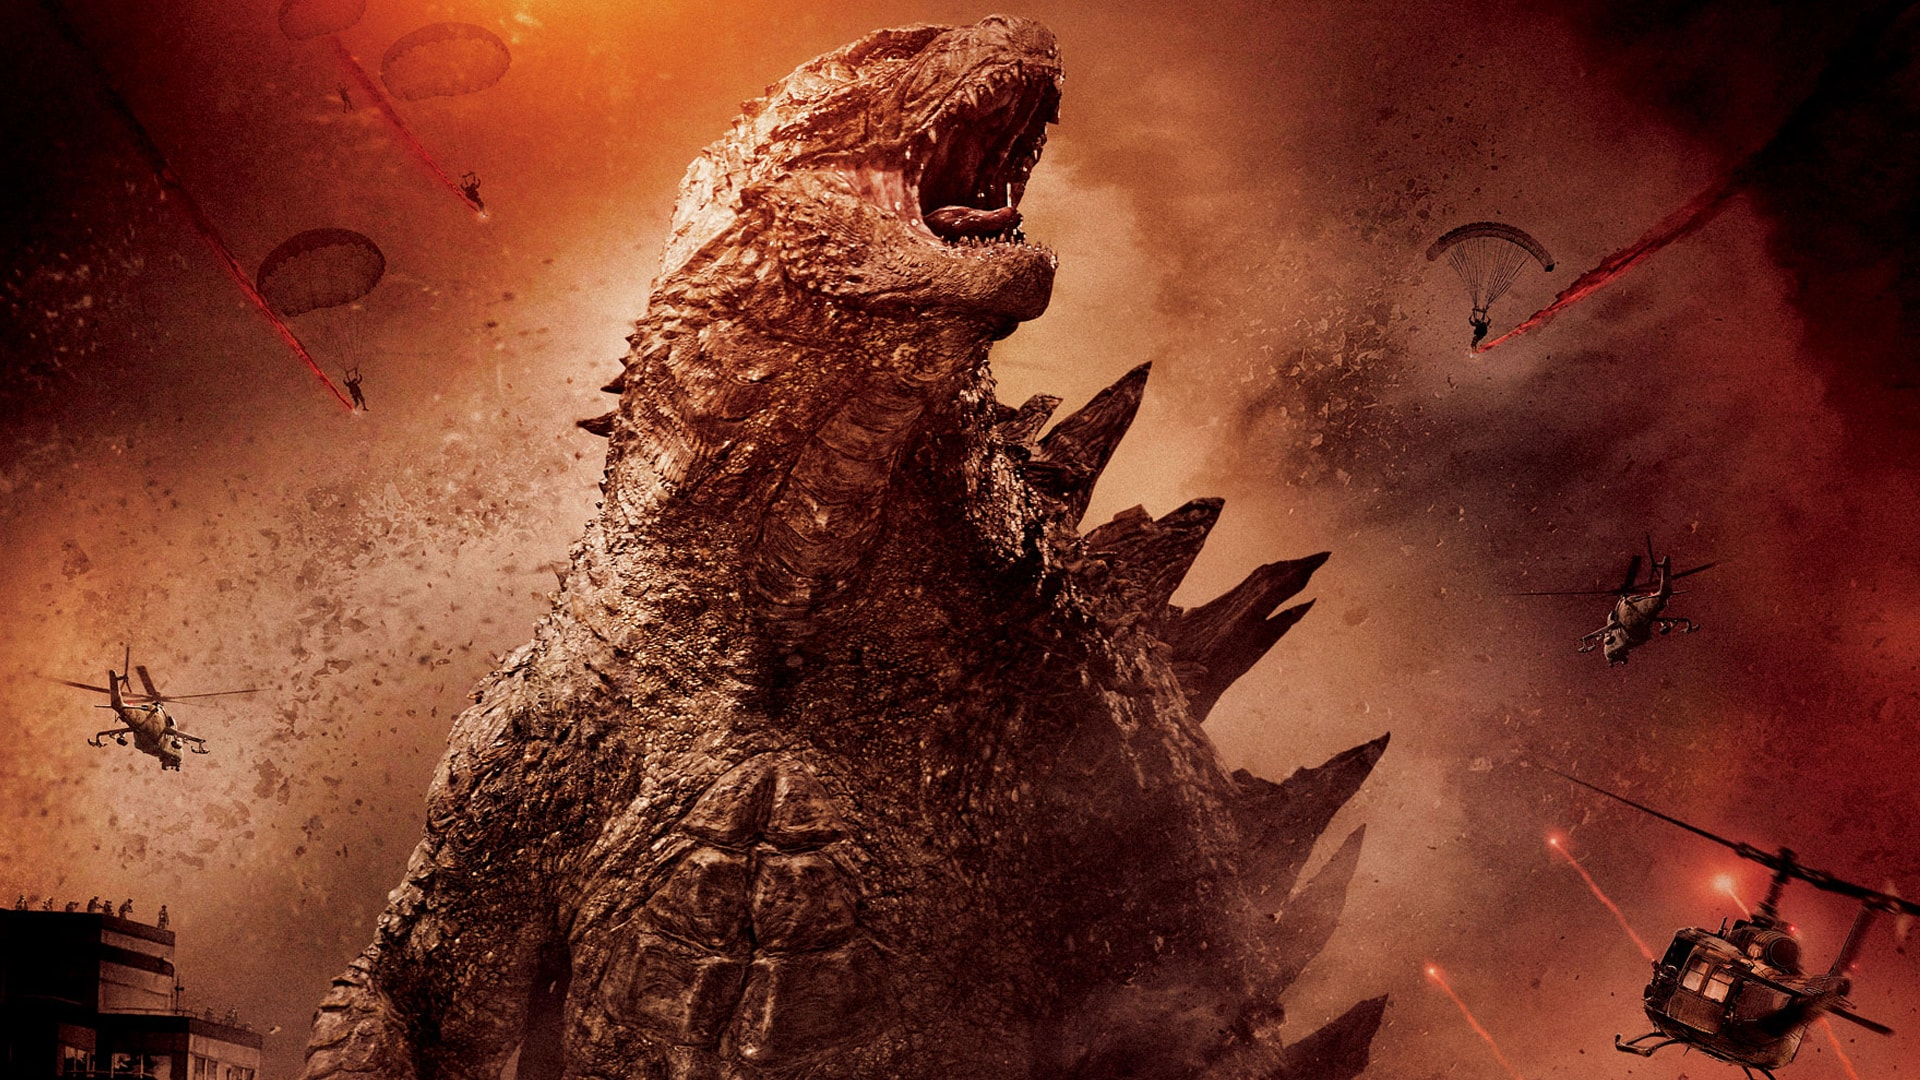 Godzilla 2014 Full hd wallpapers